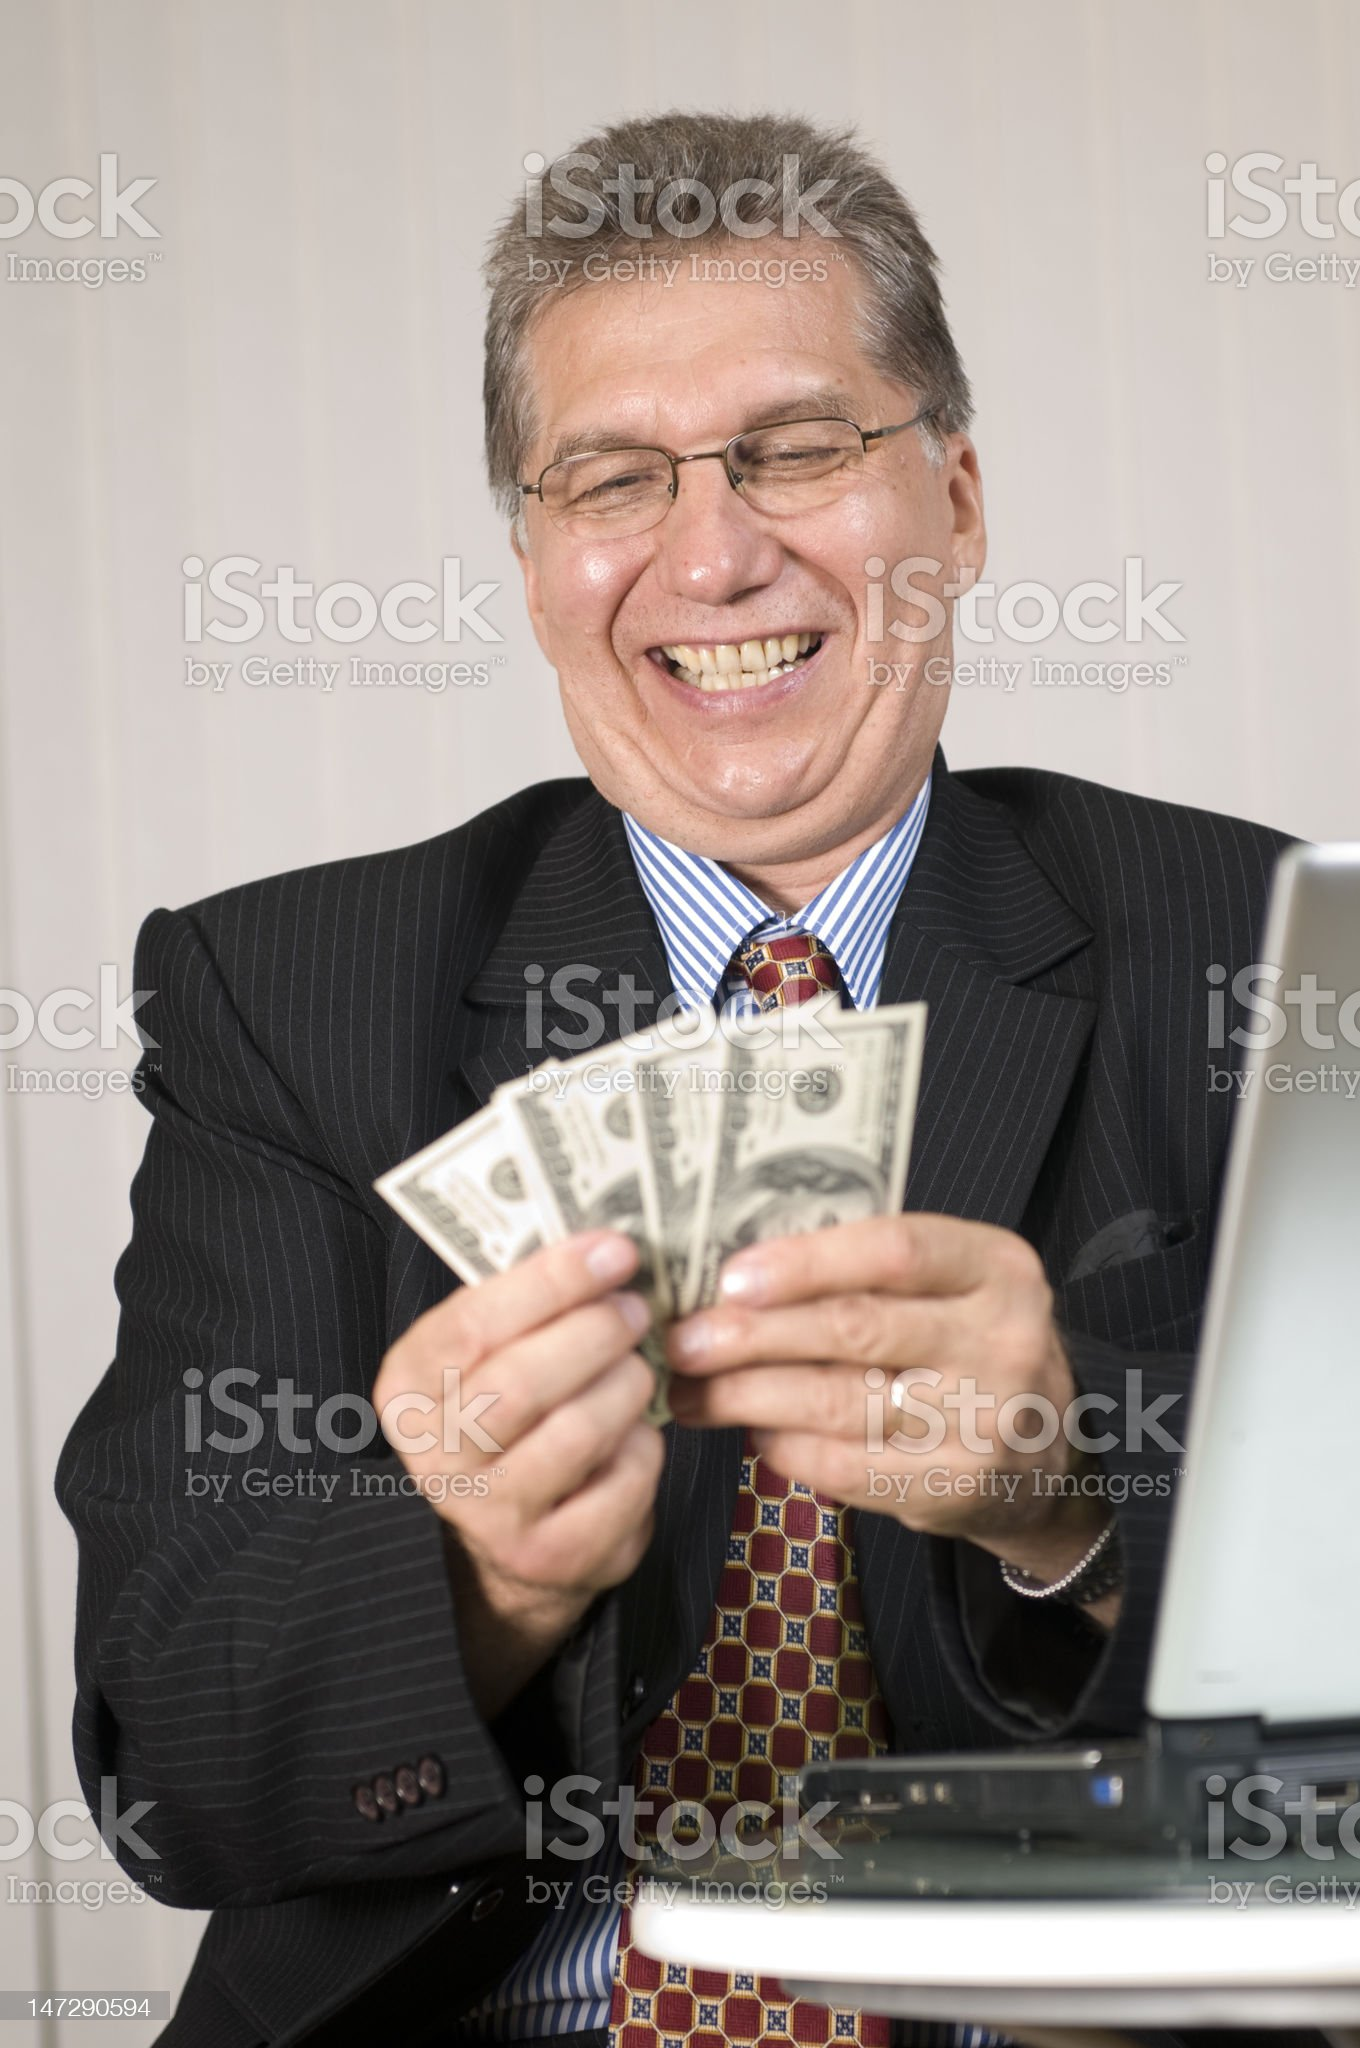 Make money with computer royalty-free stock photo